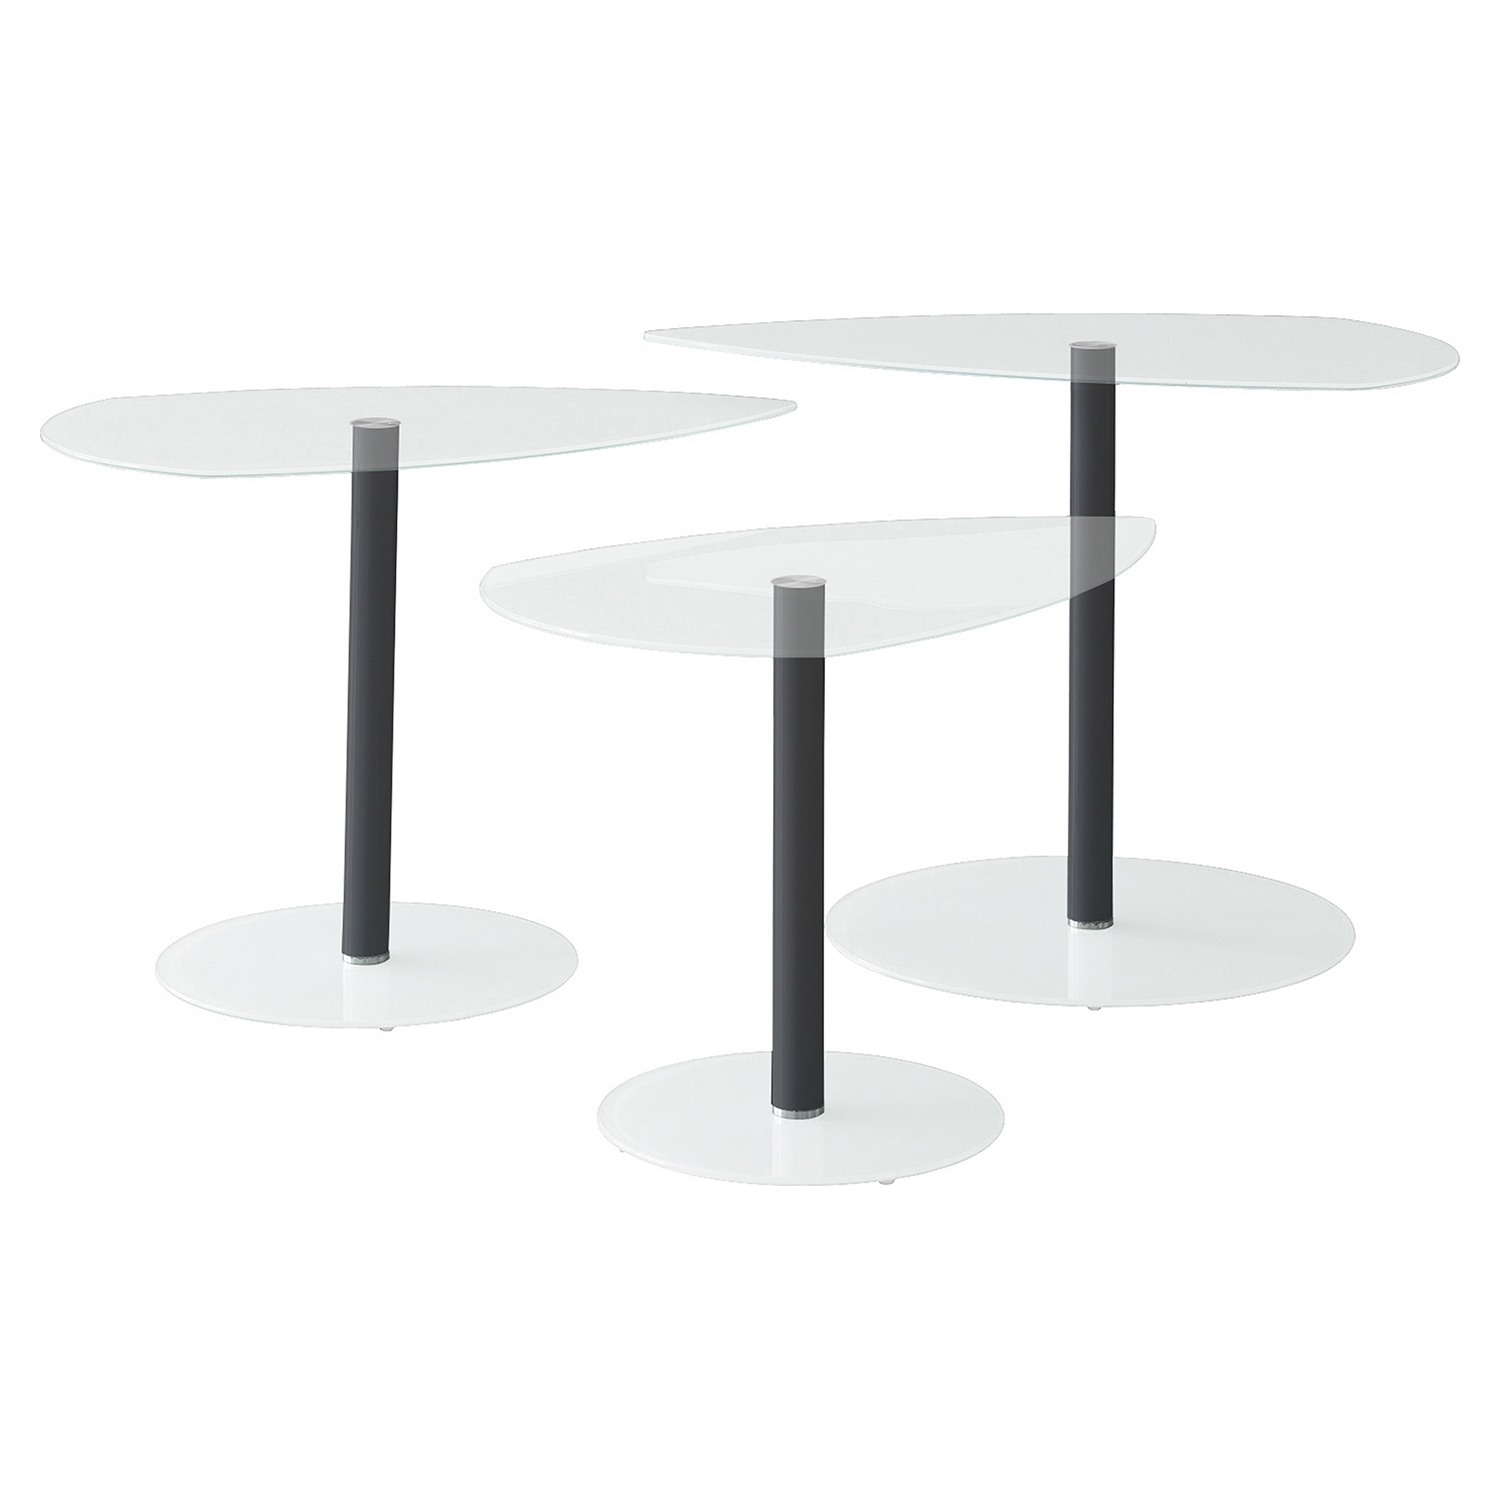 Pix Nesting Tables - Clear